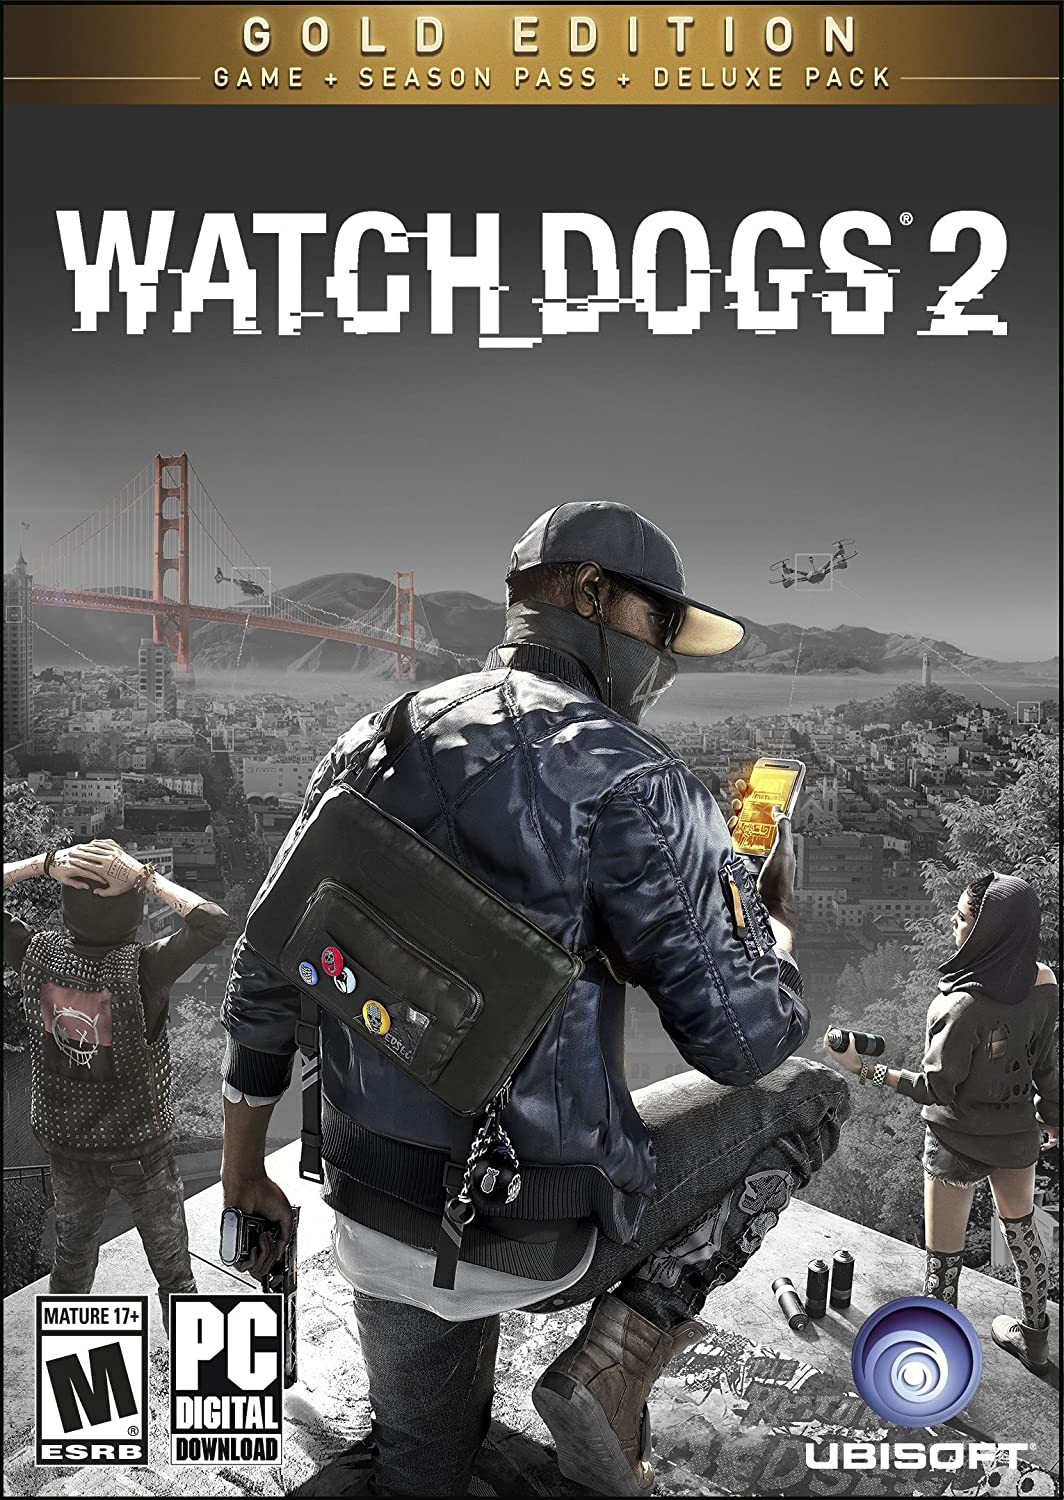 uplay pc download for watch dogs 2